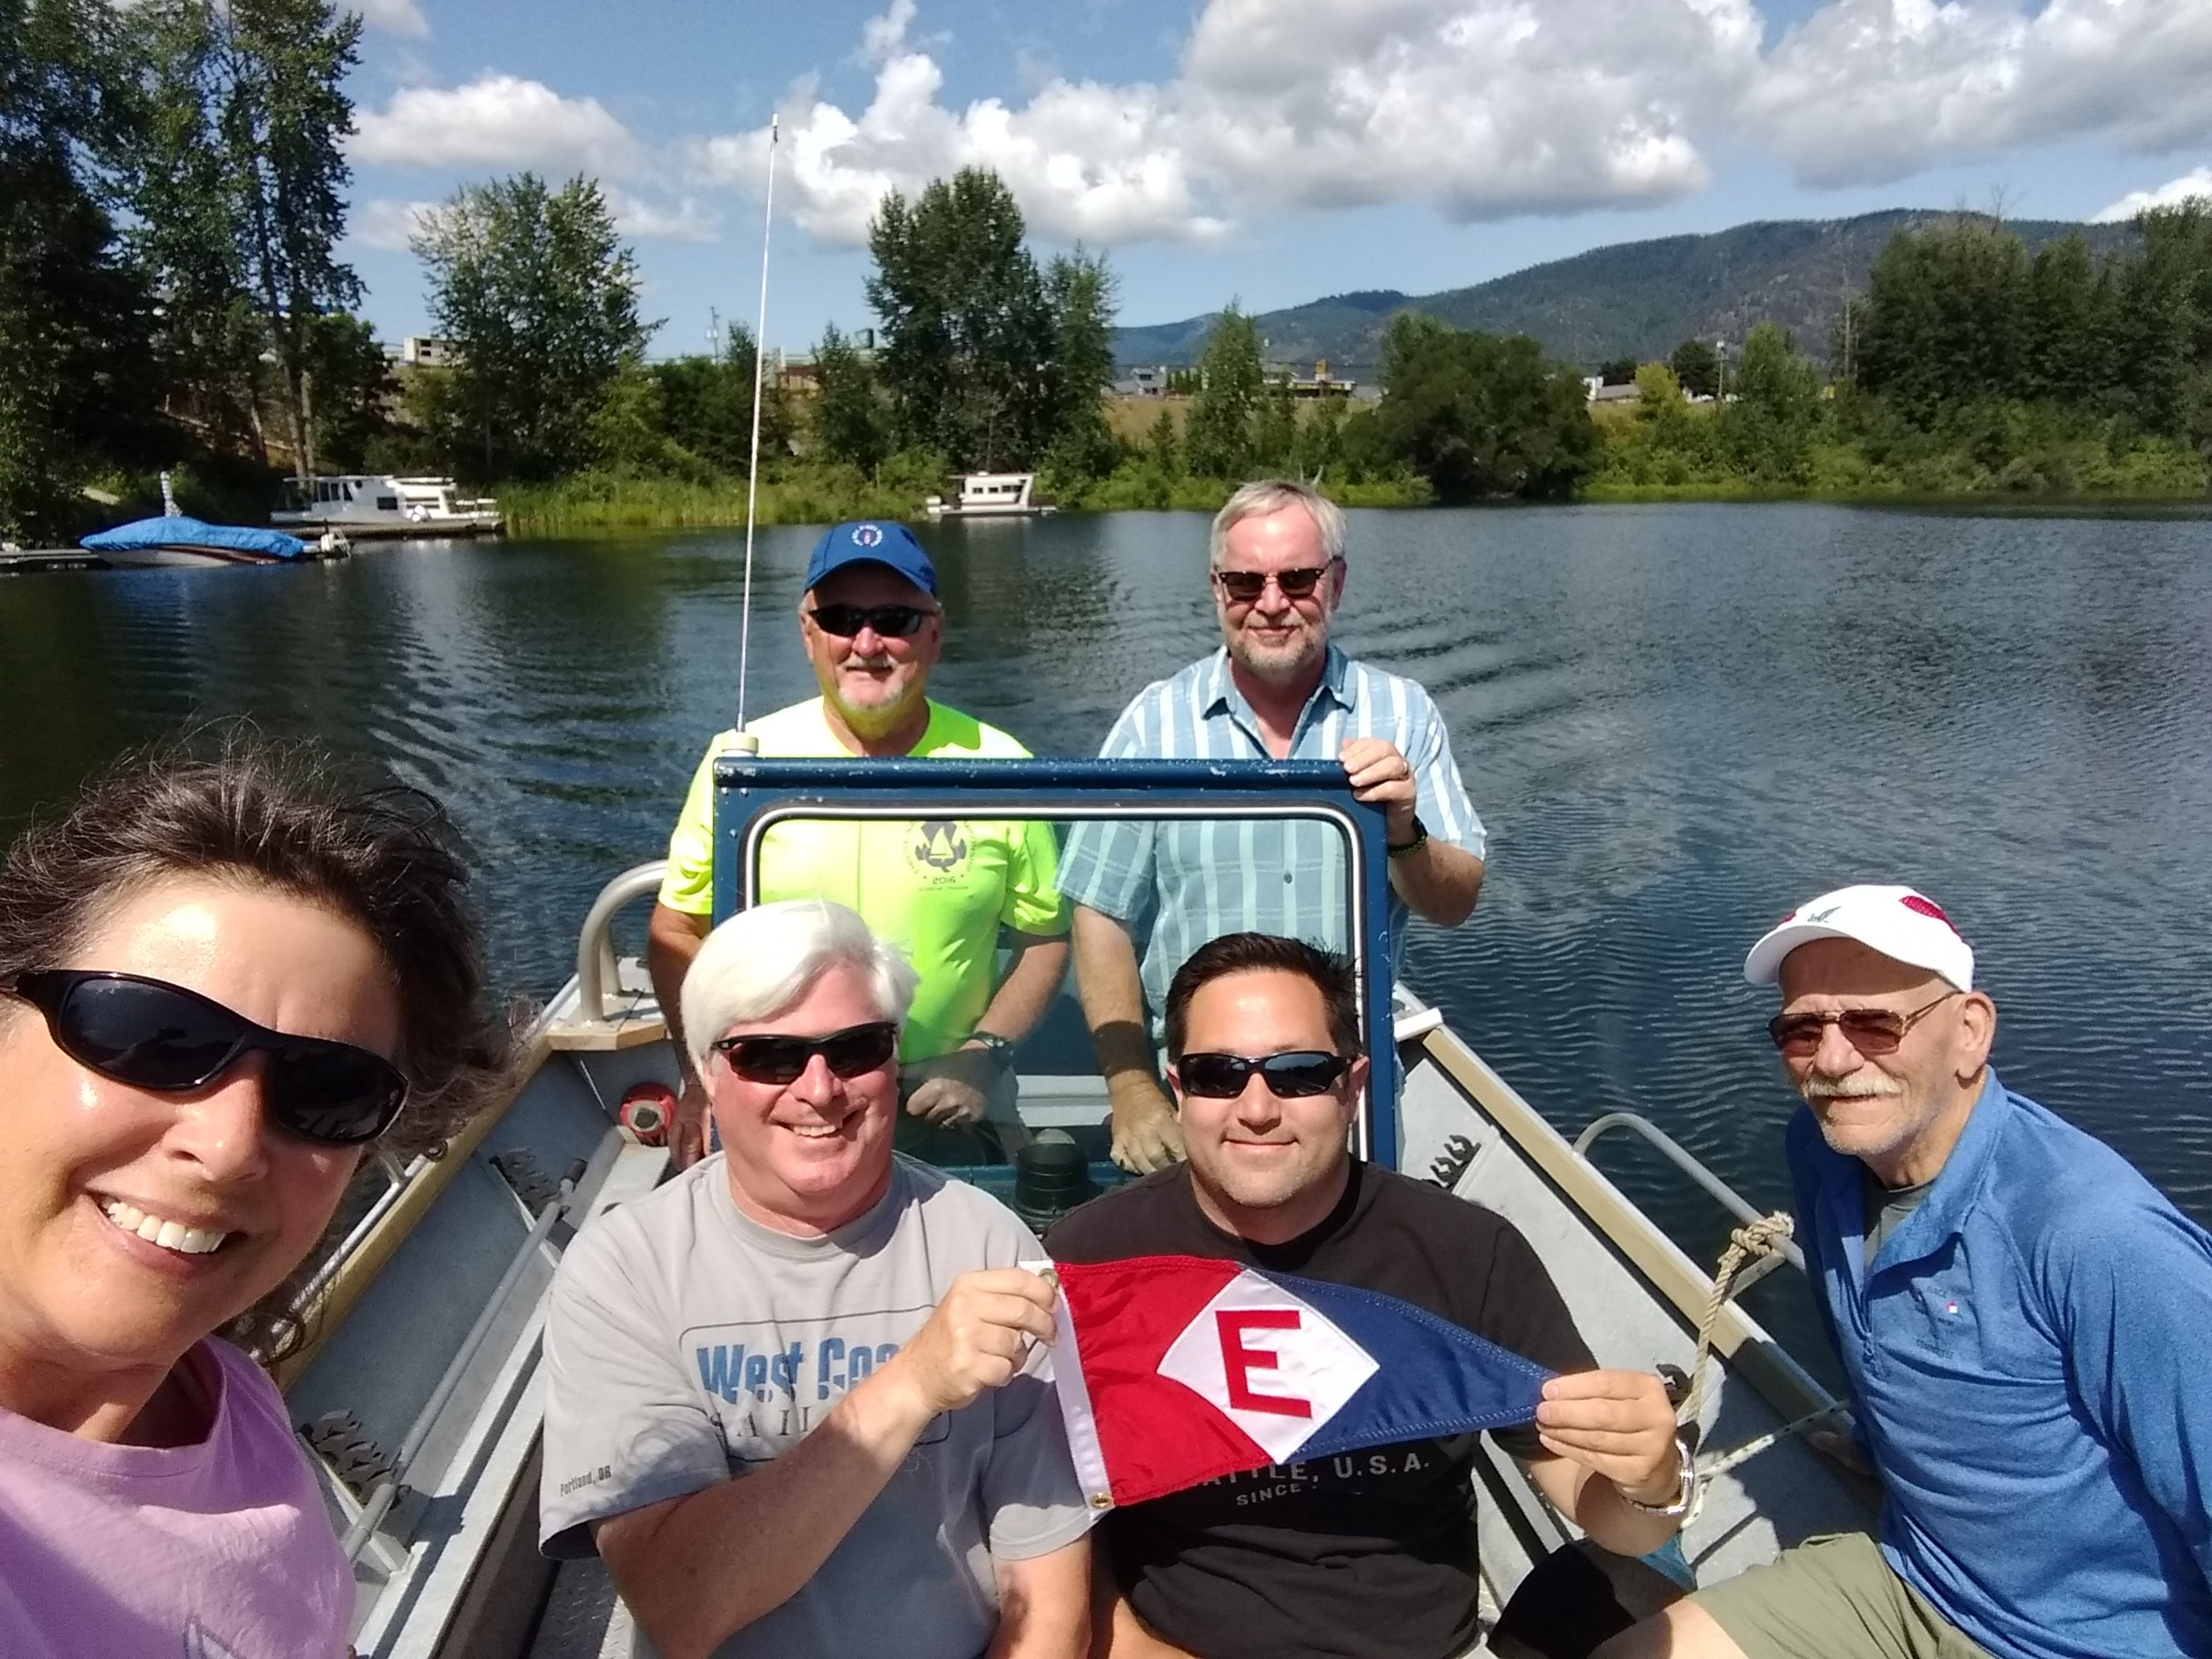 Members of EYC's Race Committee showed their colors at 2019 Thistle Nationals in Sandpoint, Idaho